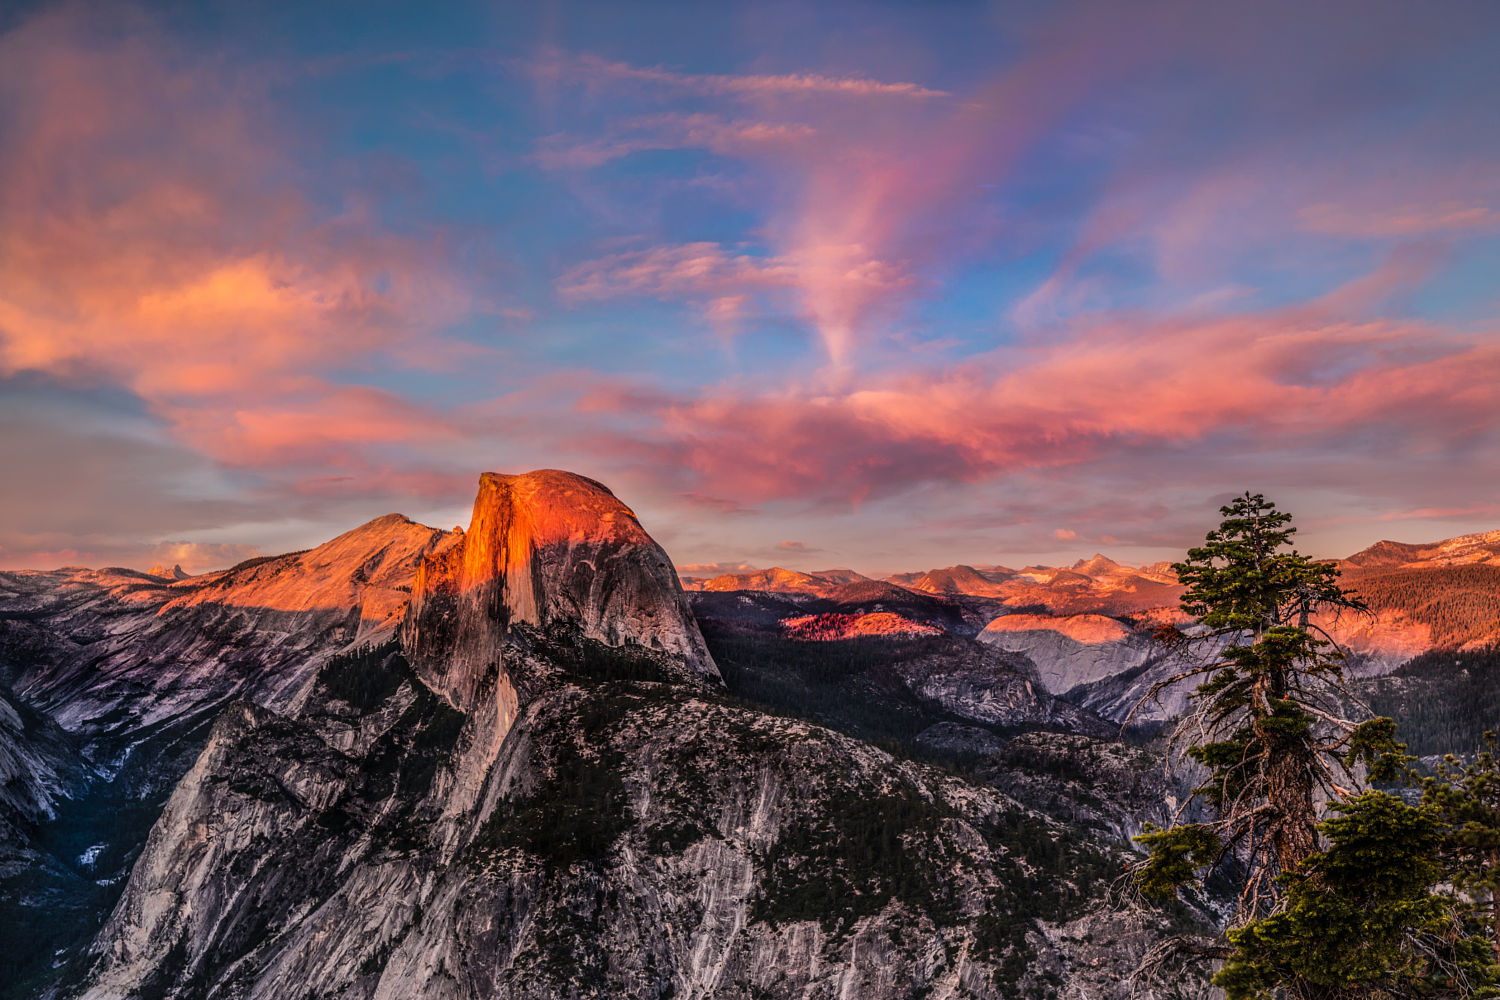 Half Dome at sunset. This occurs right before the sun disappears and the stars magically appear in the sky. And this event seemingly takes place every day.